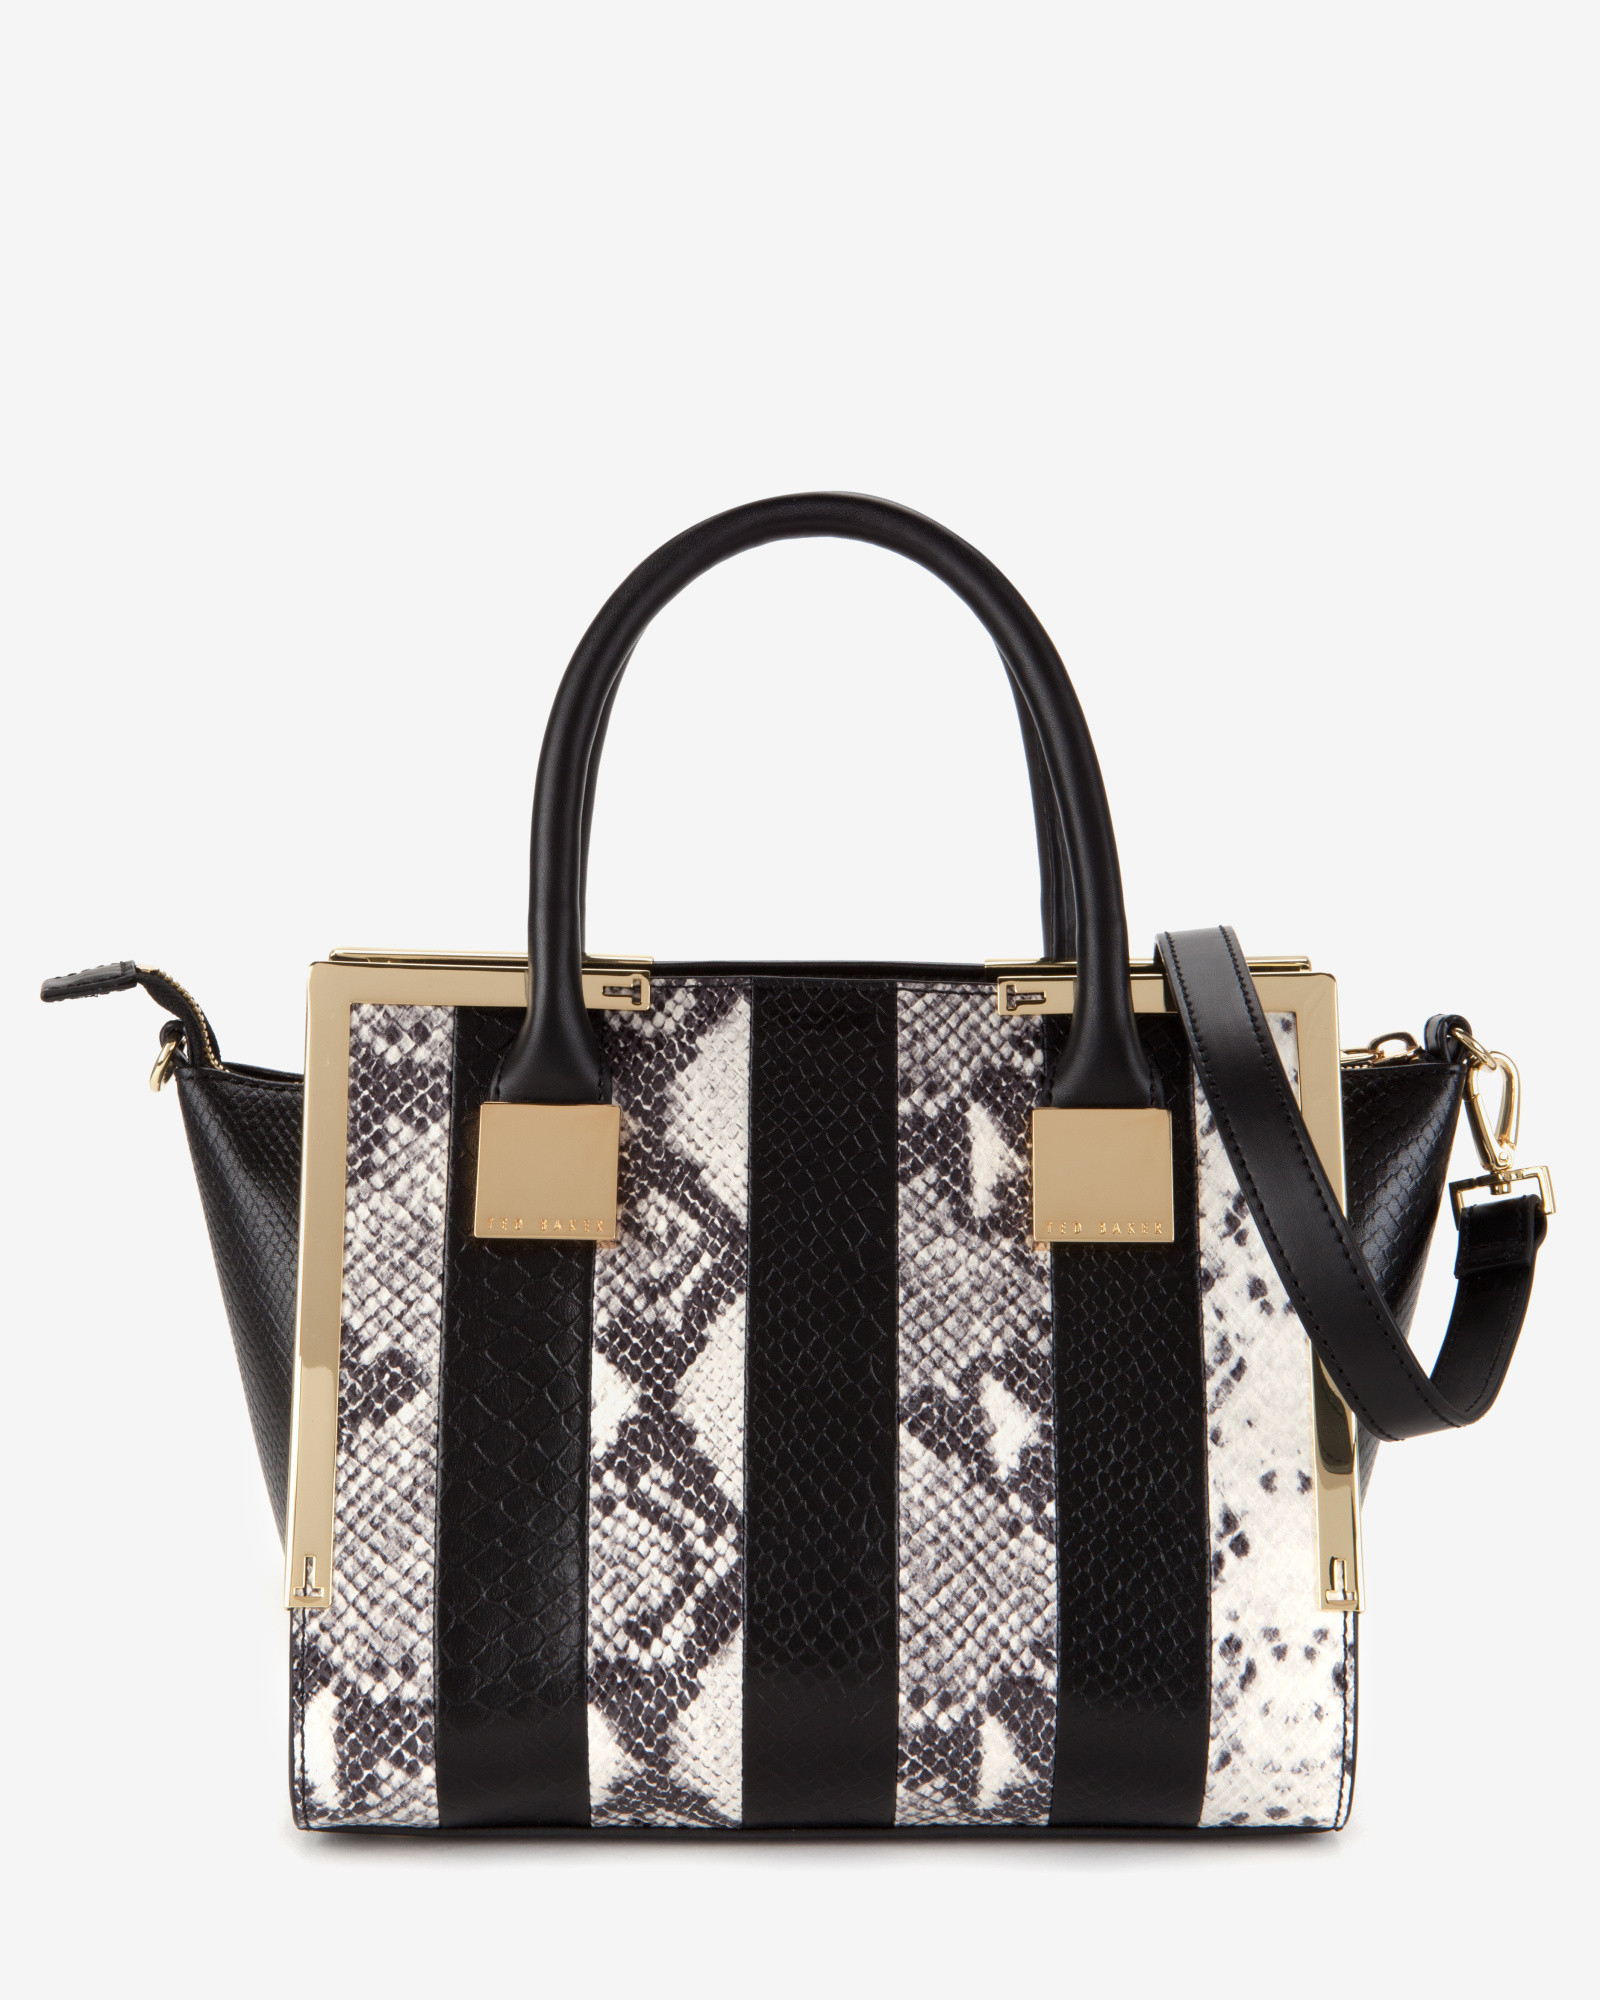 7e04fdf368 Lyst - Ted Baker Exotic Leather Mini Tote Bag in Black